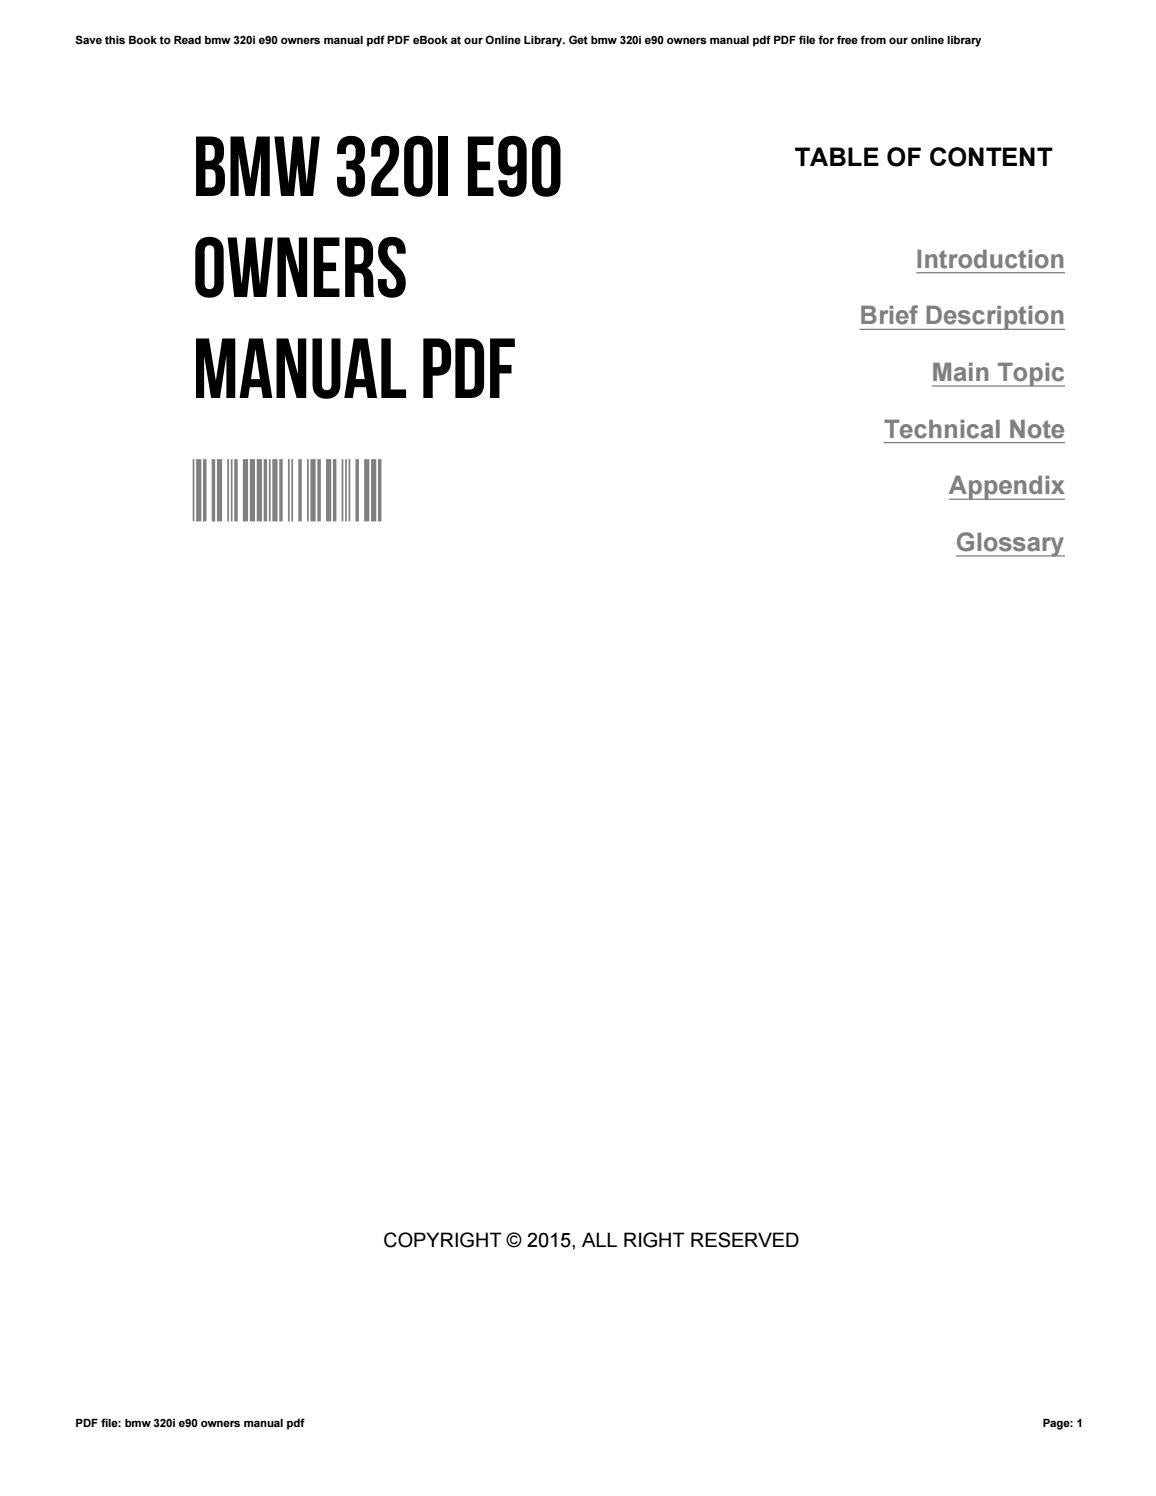 bmw 320i e90 owners manual pdf by charlesfunk4330